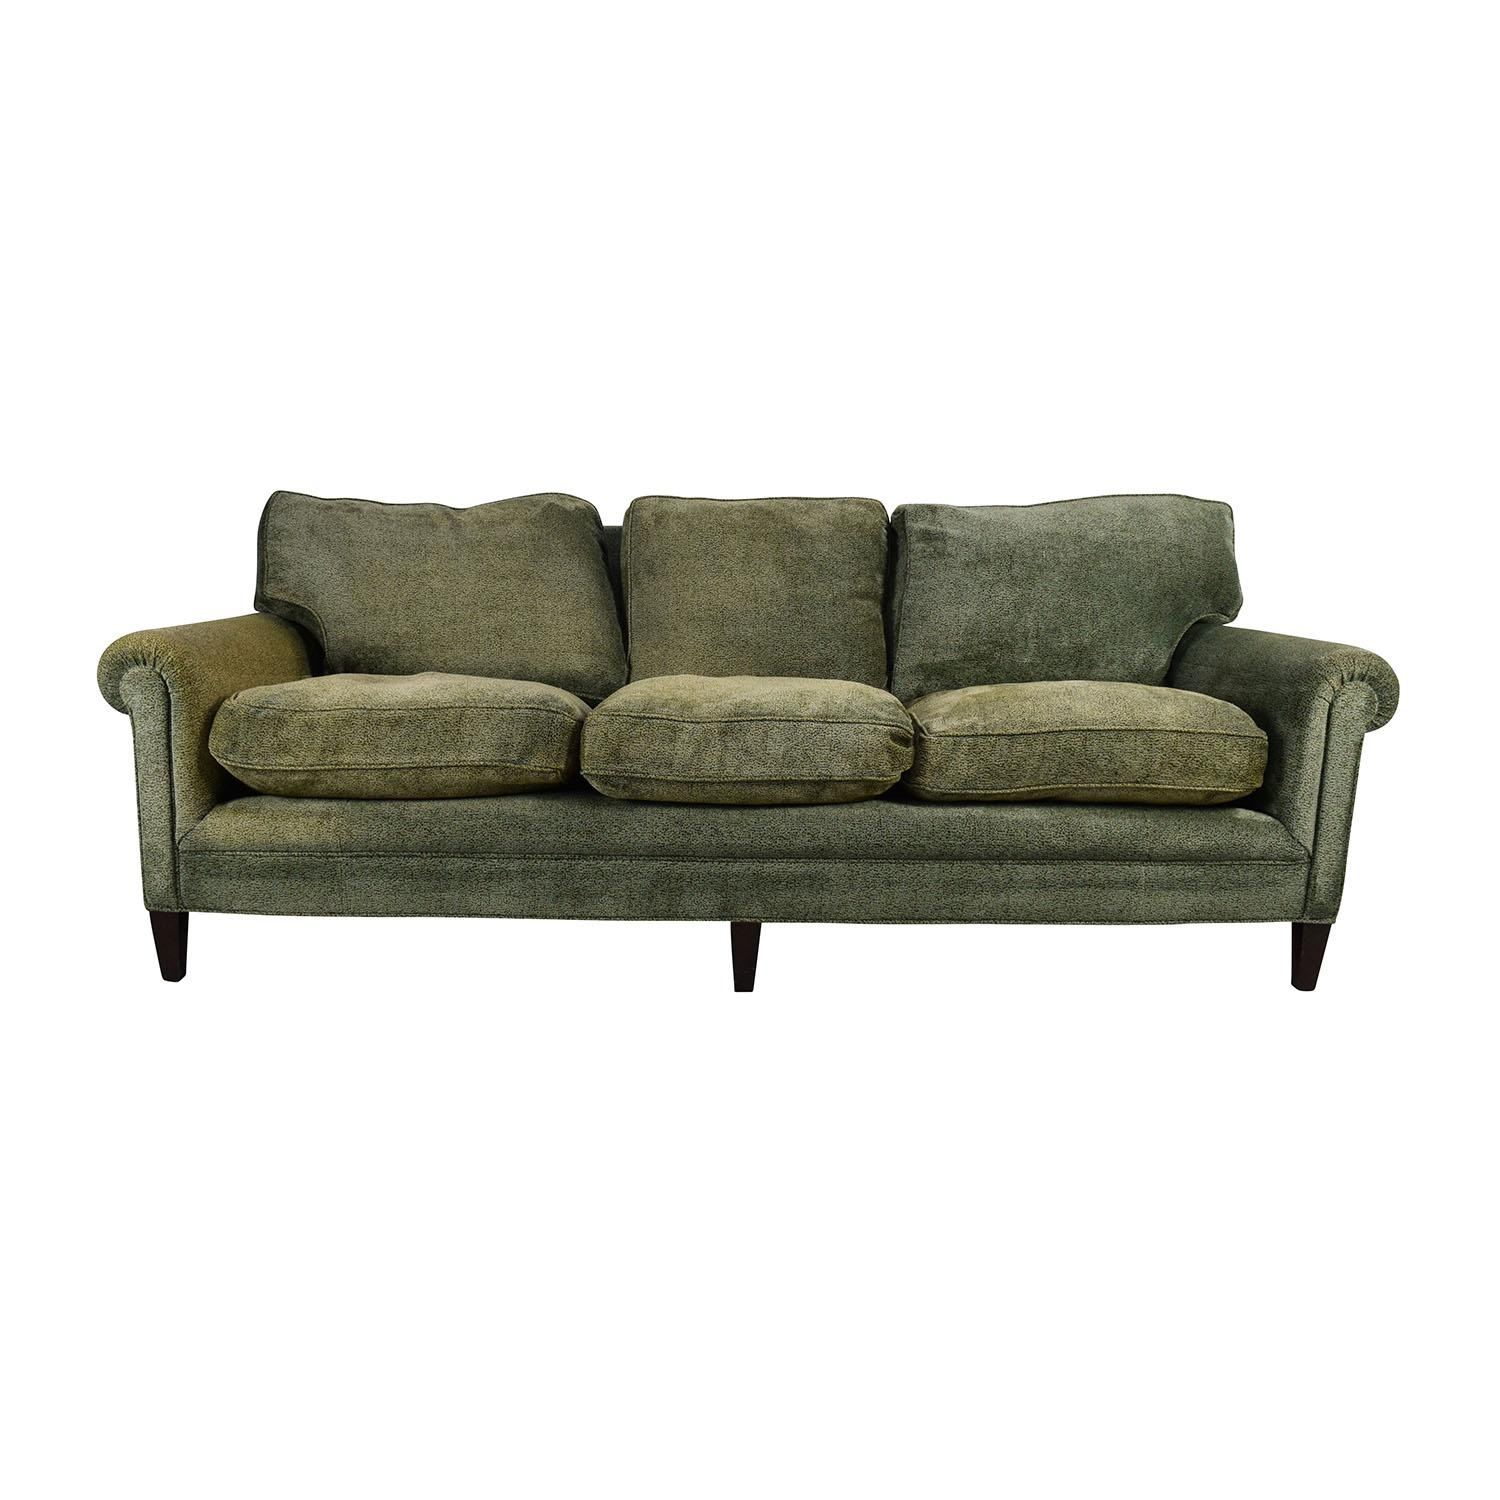 84% Off – Thomas Alexander Thomas Alexander Classic Sofa / Sofas With Regard To Classic Sofas For Sale (Image 4 of 20)